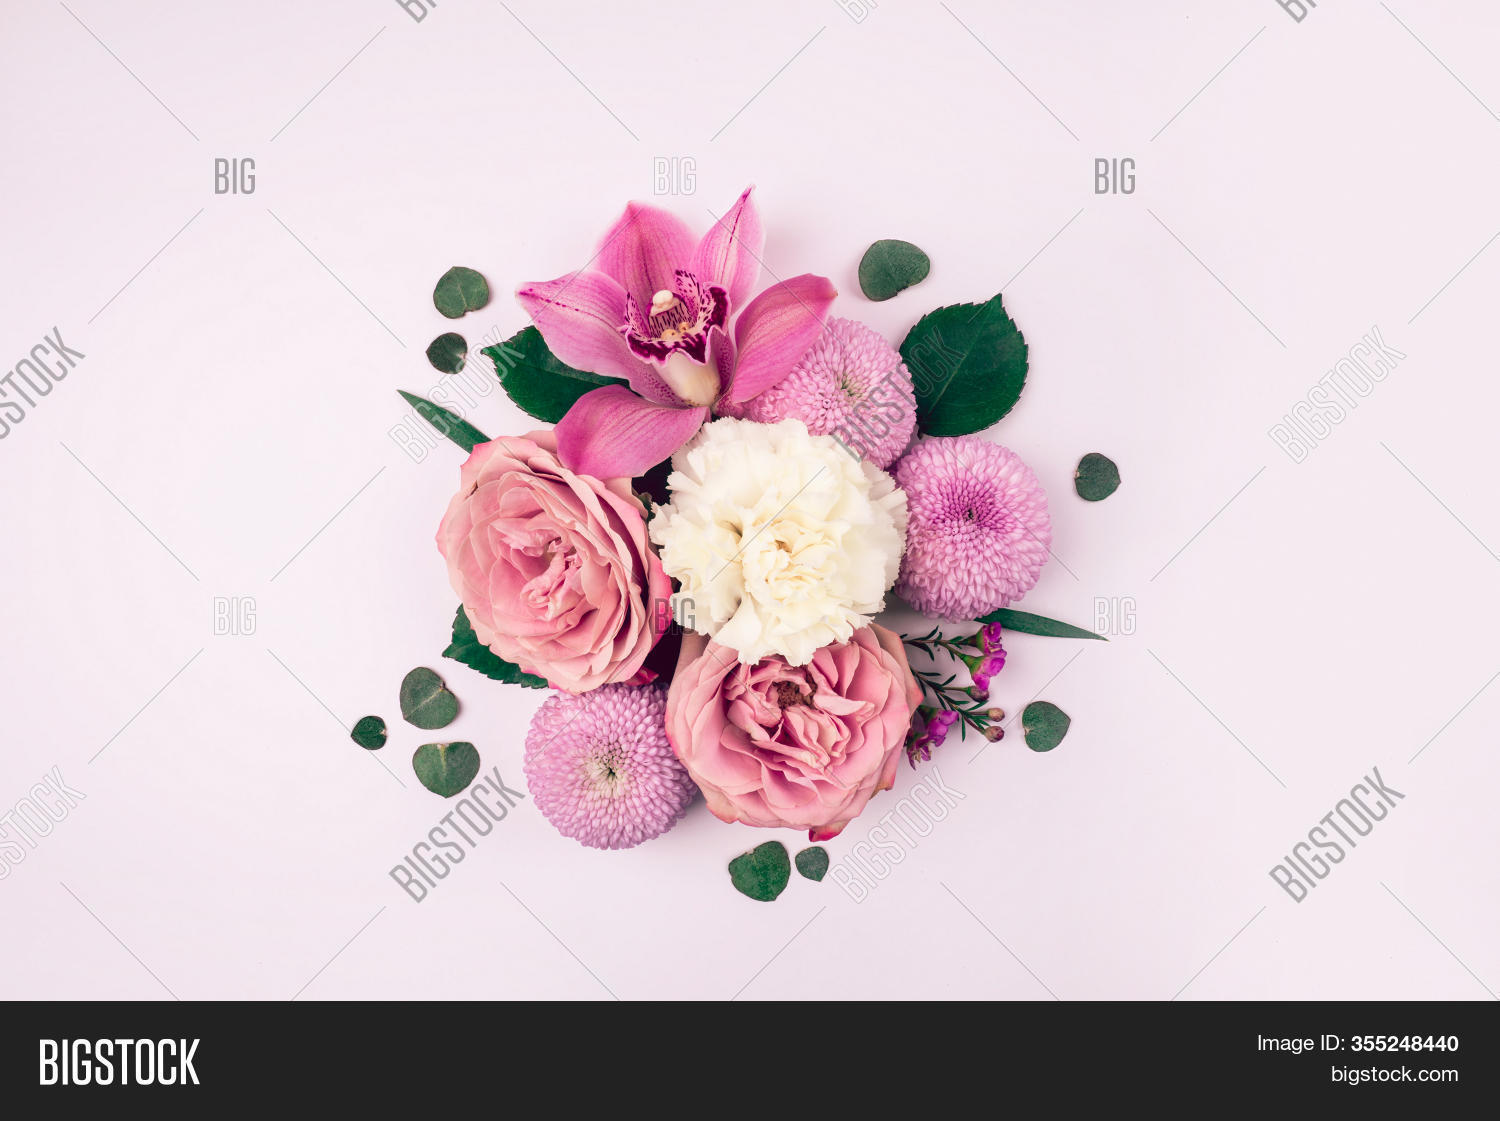 Flowers Bouquet Made Image Photo Free Trial Bigstock